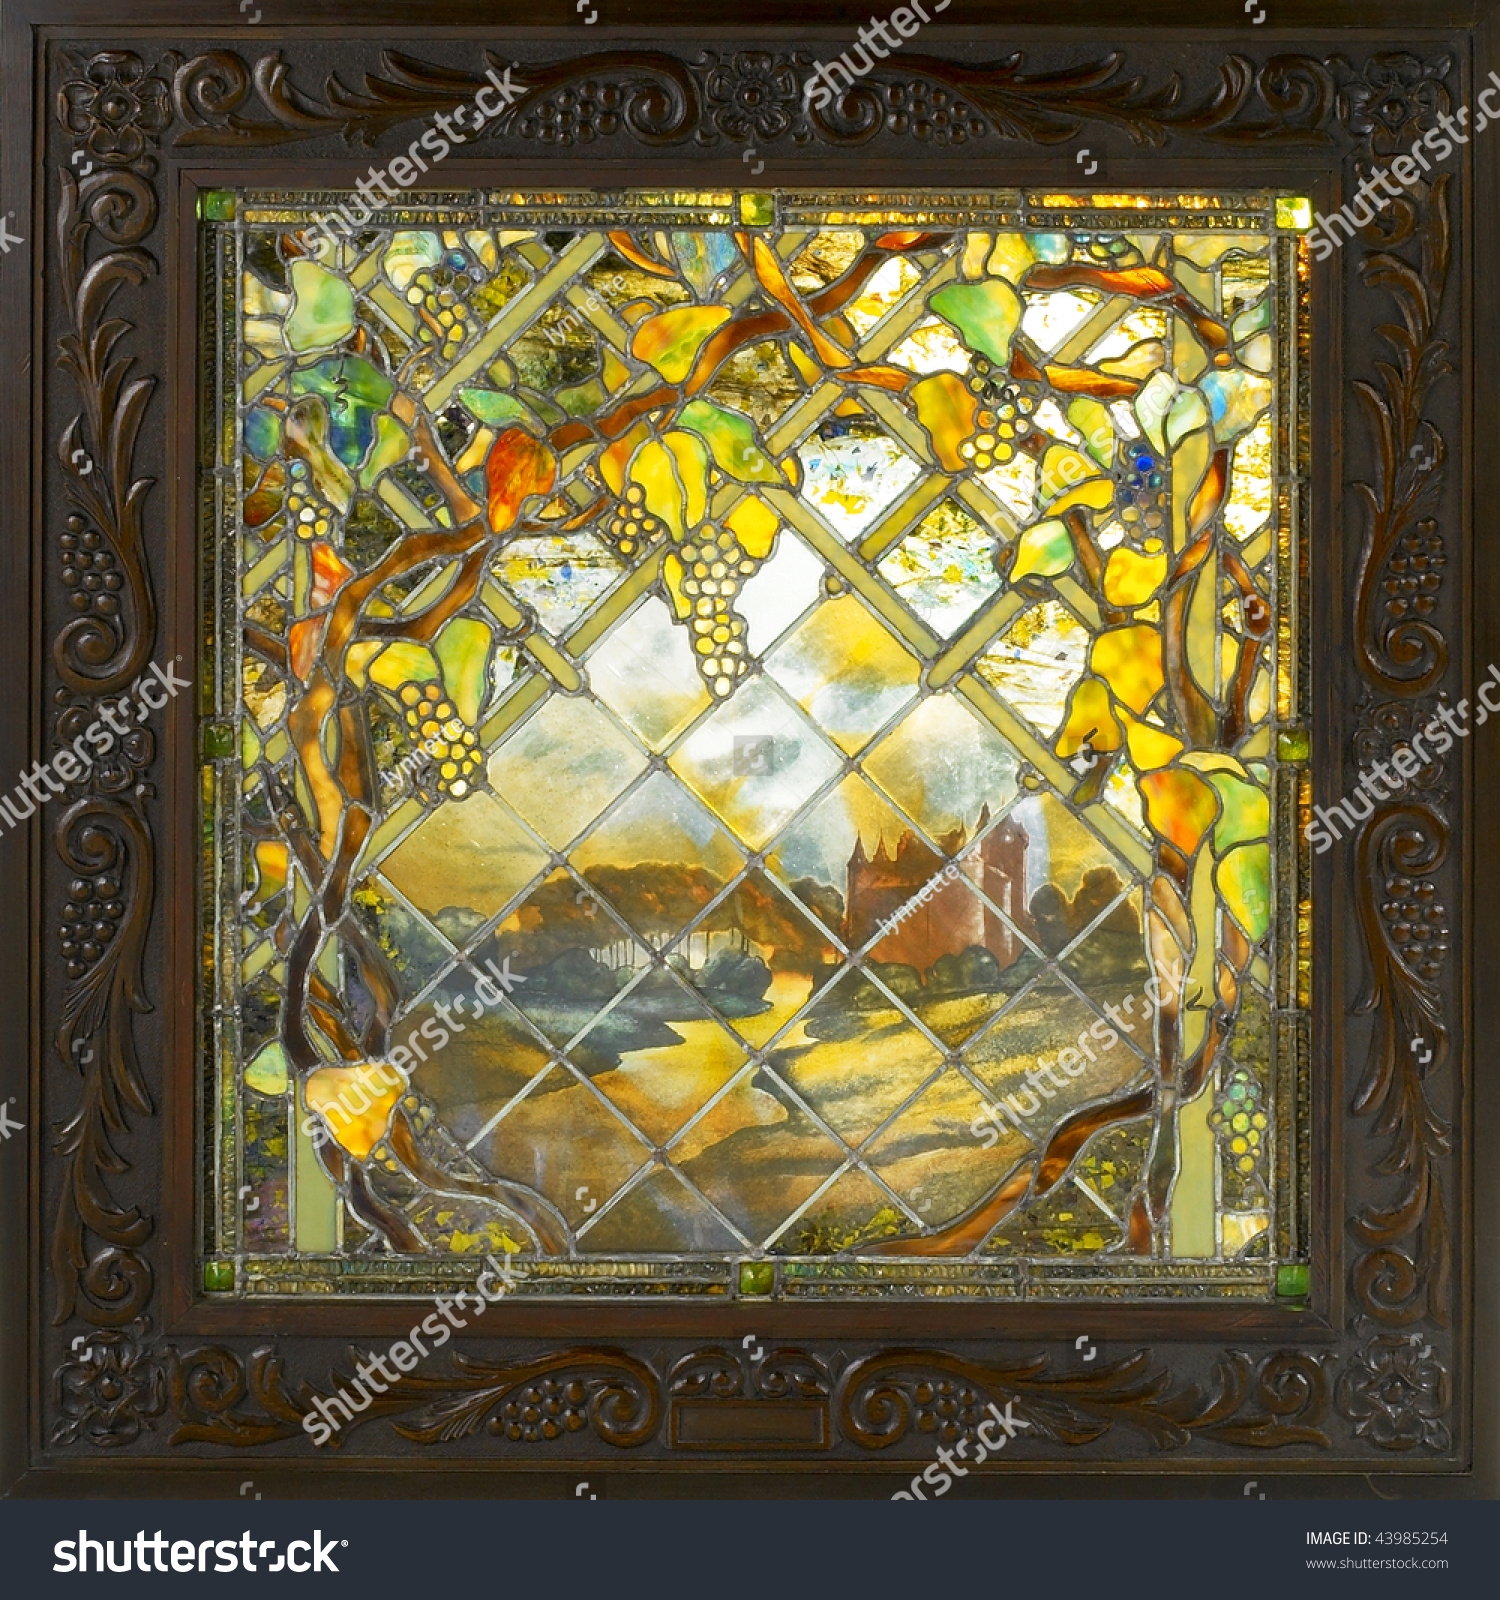 Art Deco Stained Glass Window Stock Photo (Royalty Free) 43985254 ...